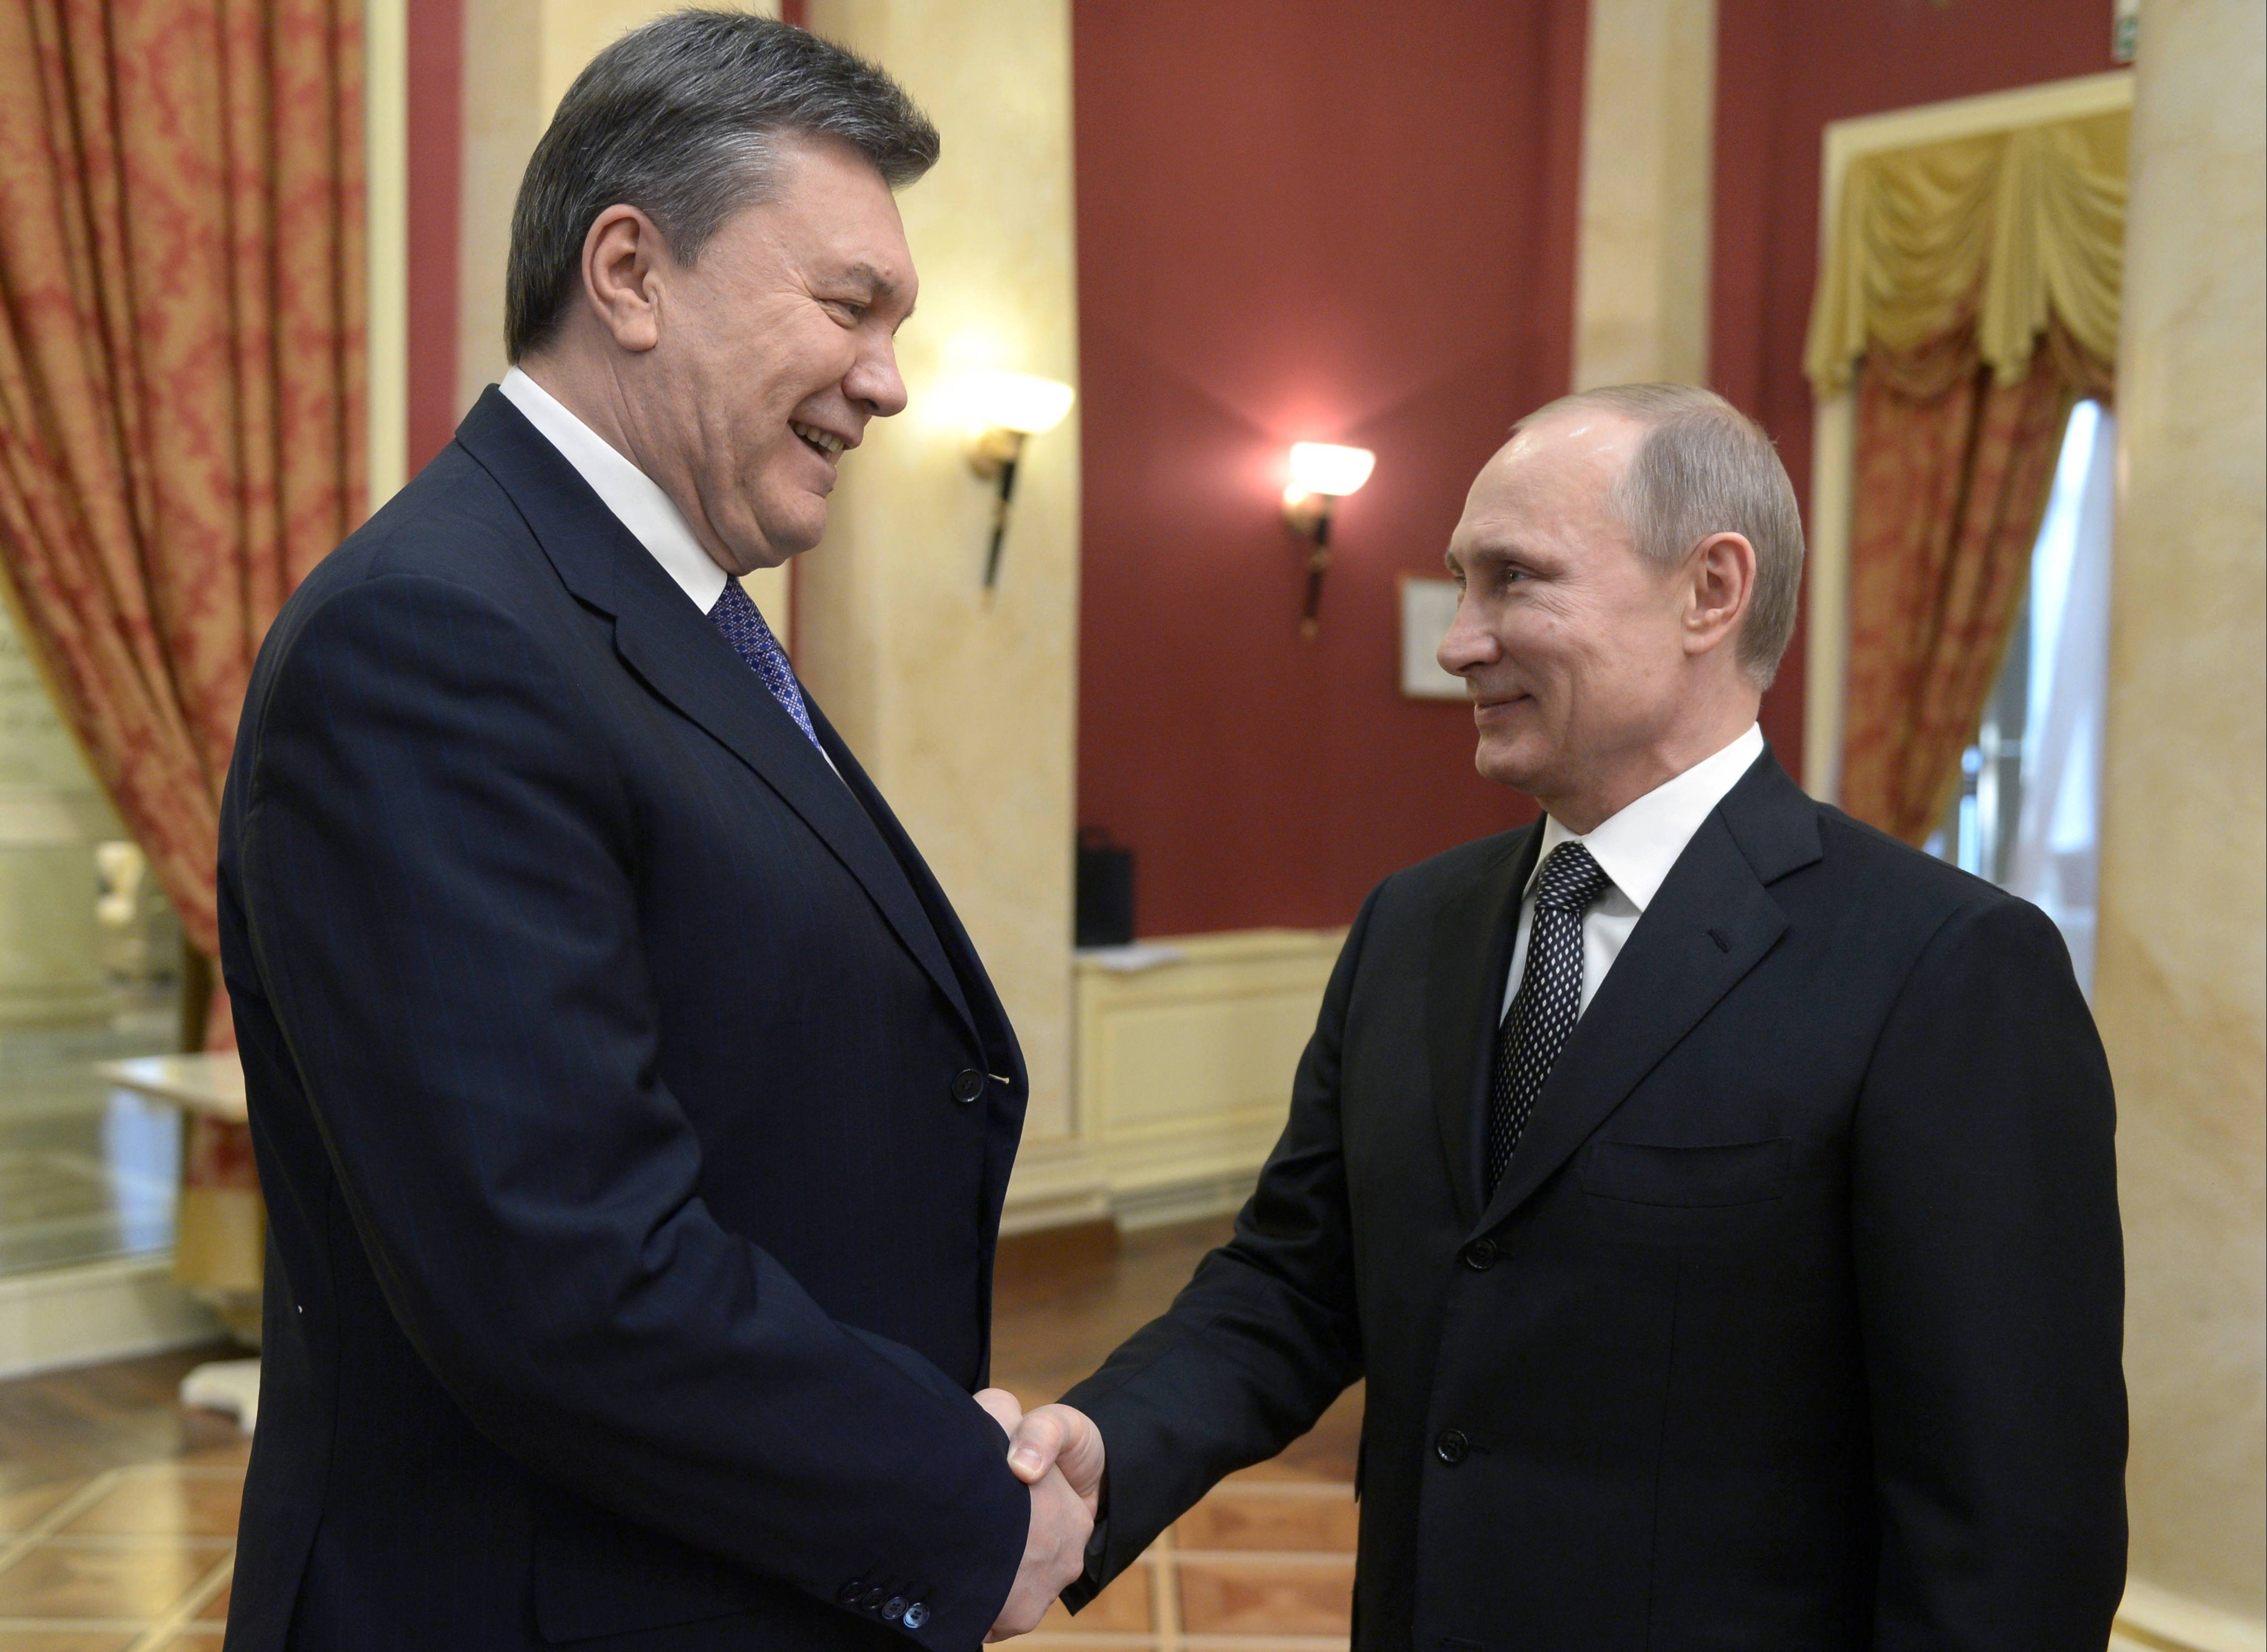 Russian President Vladimir Putin, right, is seen with Ukrainian President Viktor Yanukovych at the Olympic reception hosted by the Russian President in Sochi, Russia, Feb. 7. Now Yanukovych is on the run, and Putin is faced with a difficult question of how to react to events in Ukraine.